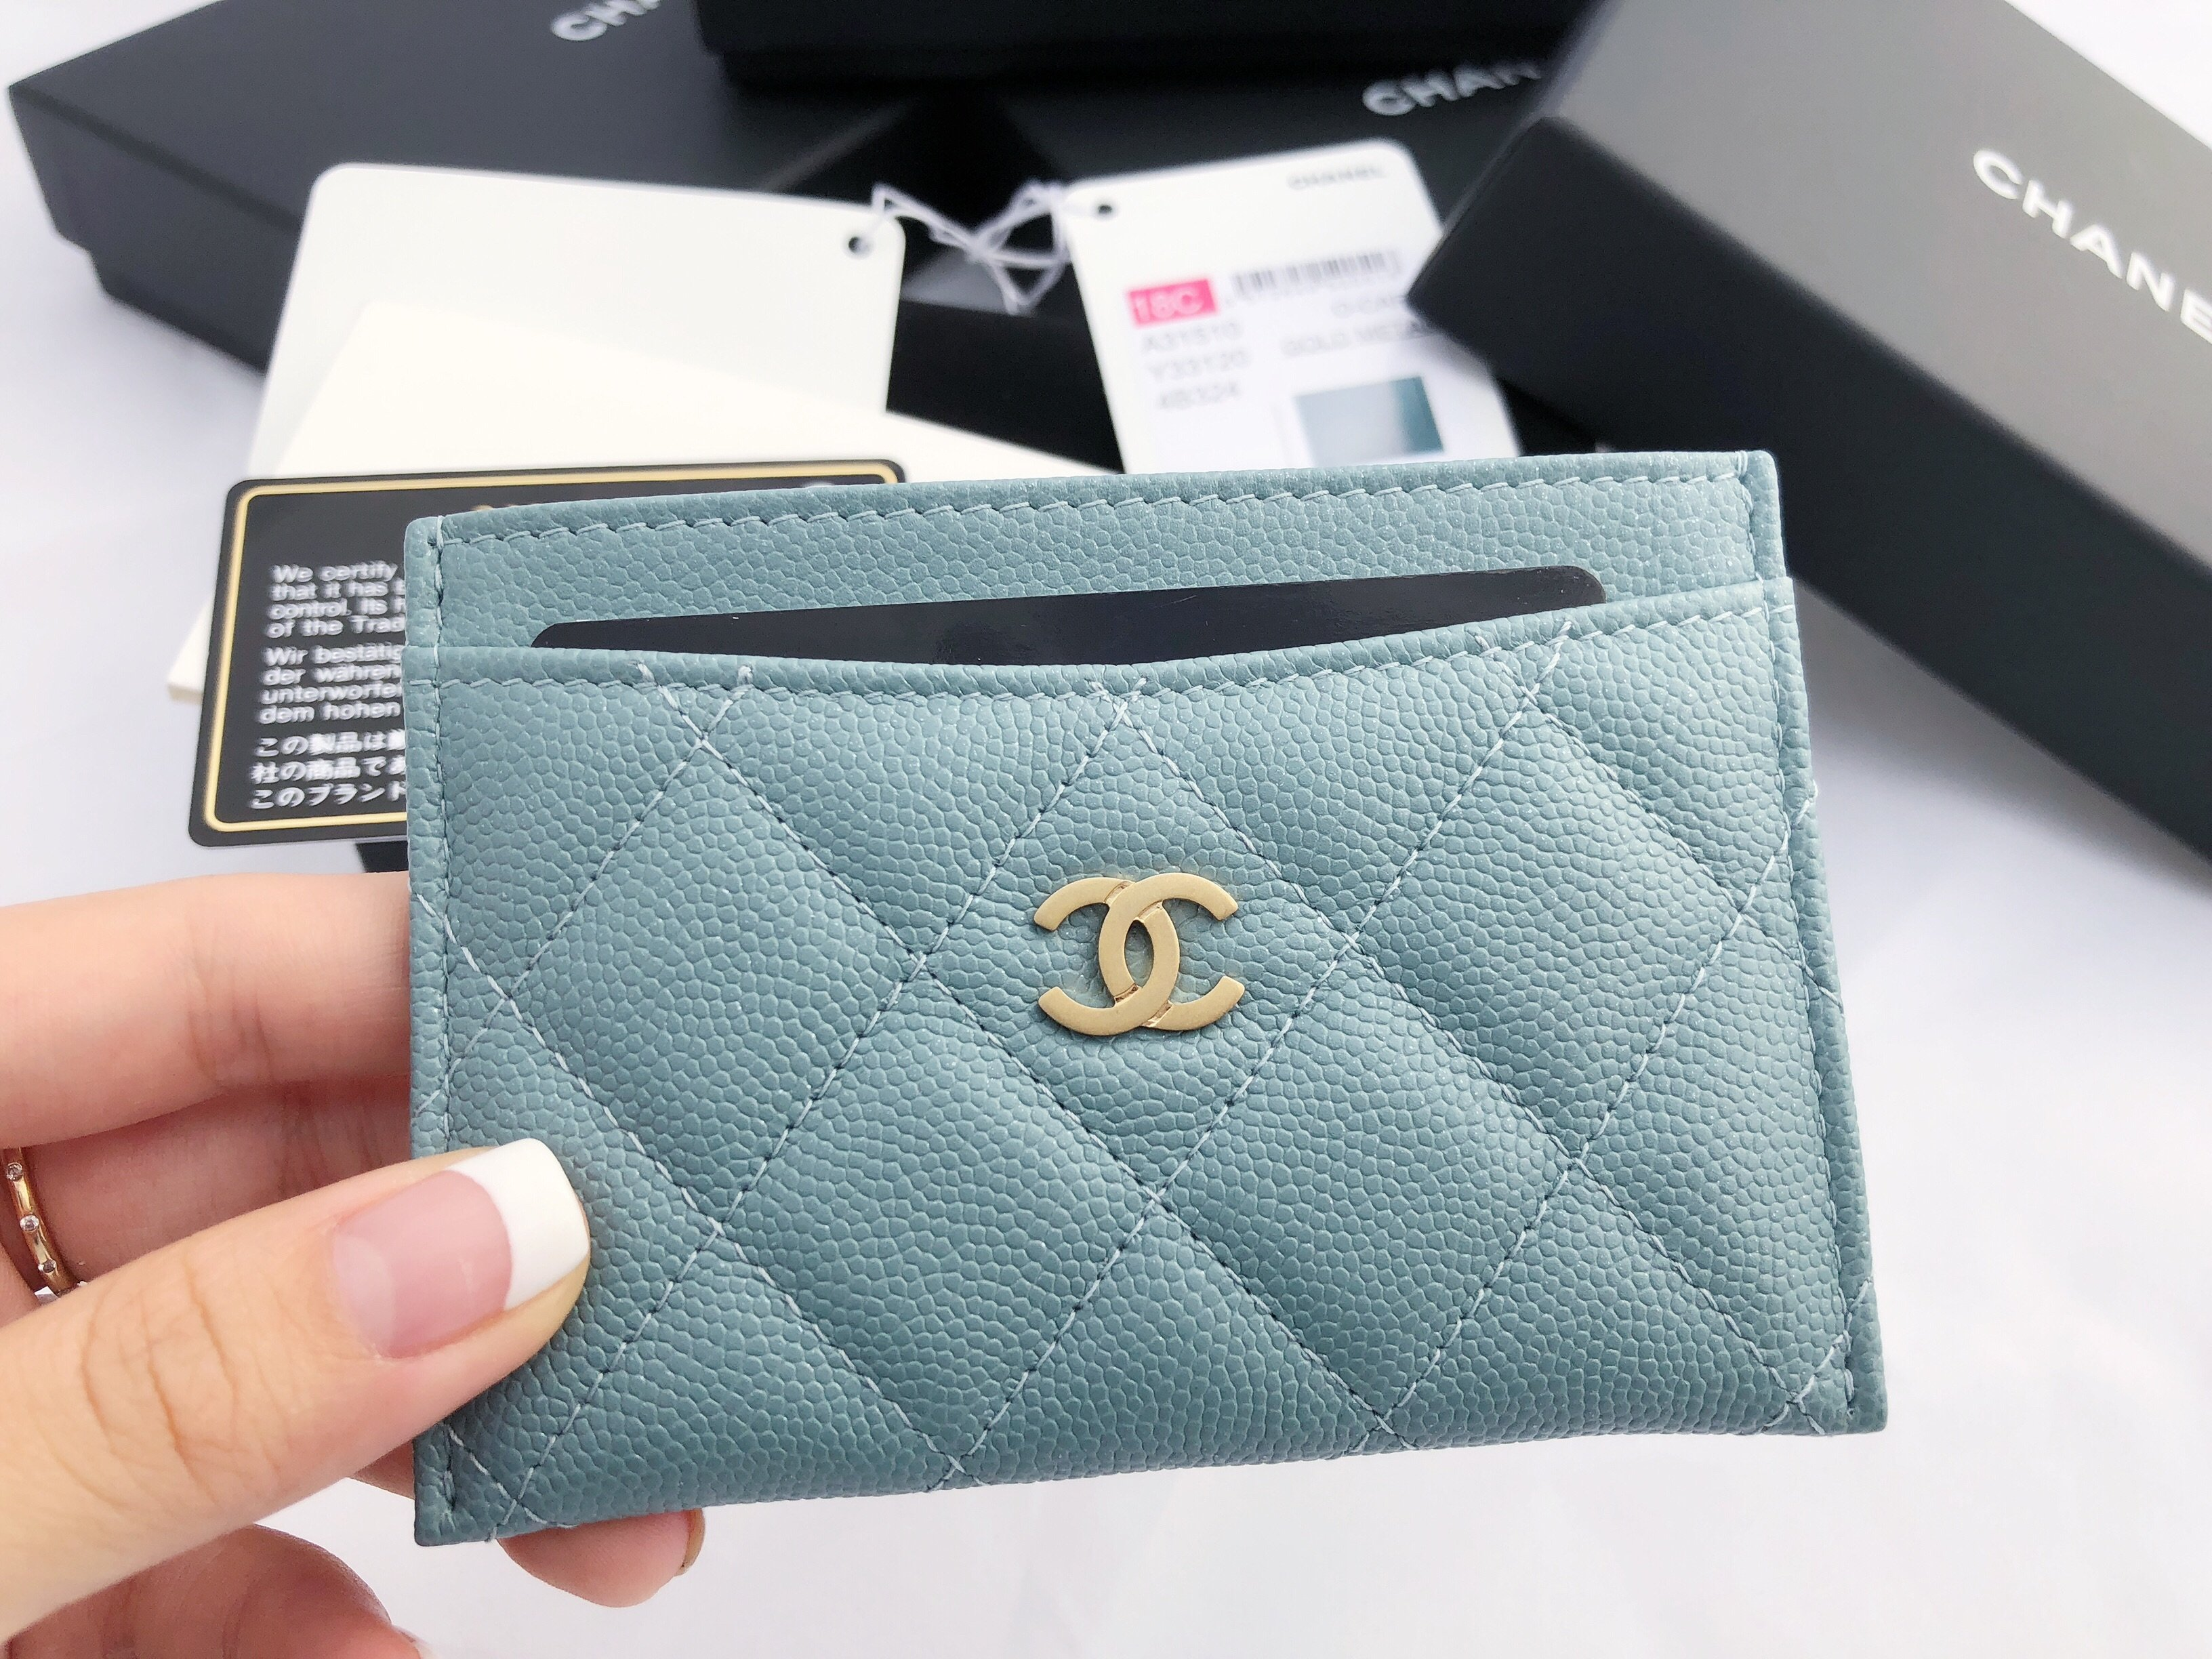 newest cabc0 3878e Details about NWT Chanel Caviar Gray Turquoise Light Blue O-Card Holder  O-Case Wallet 18C